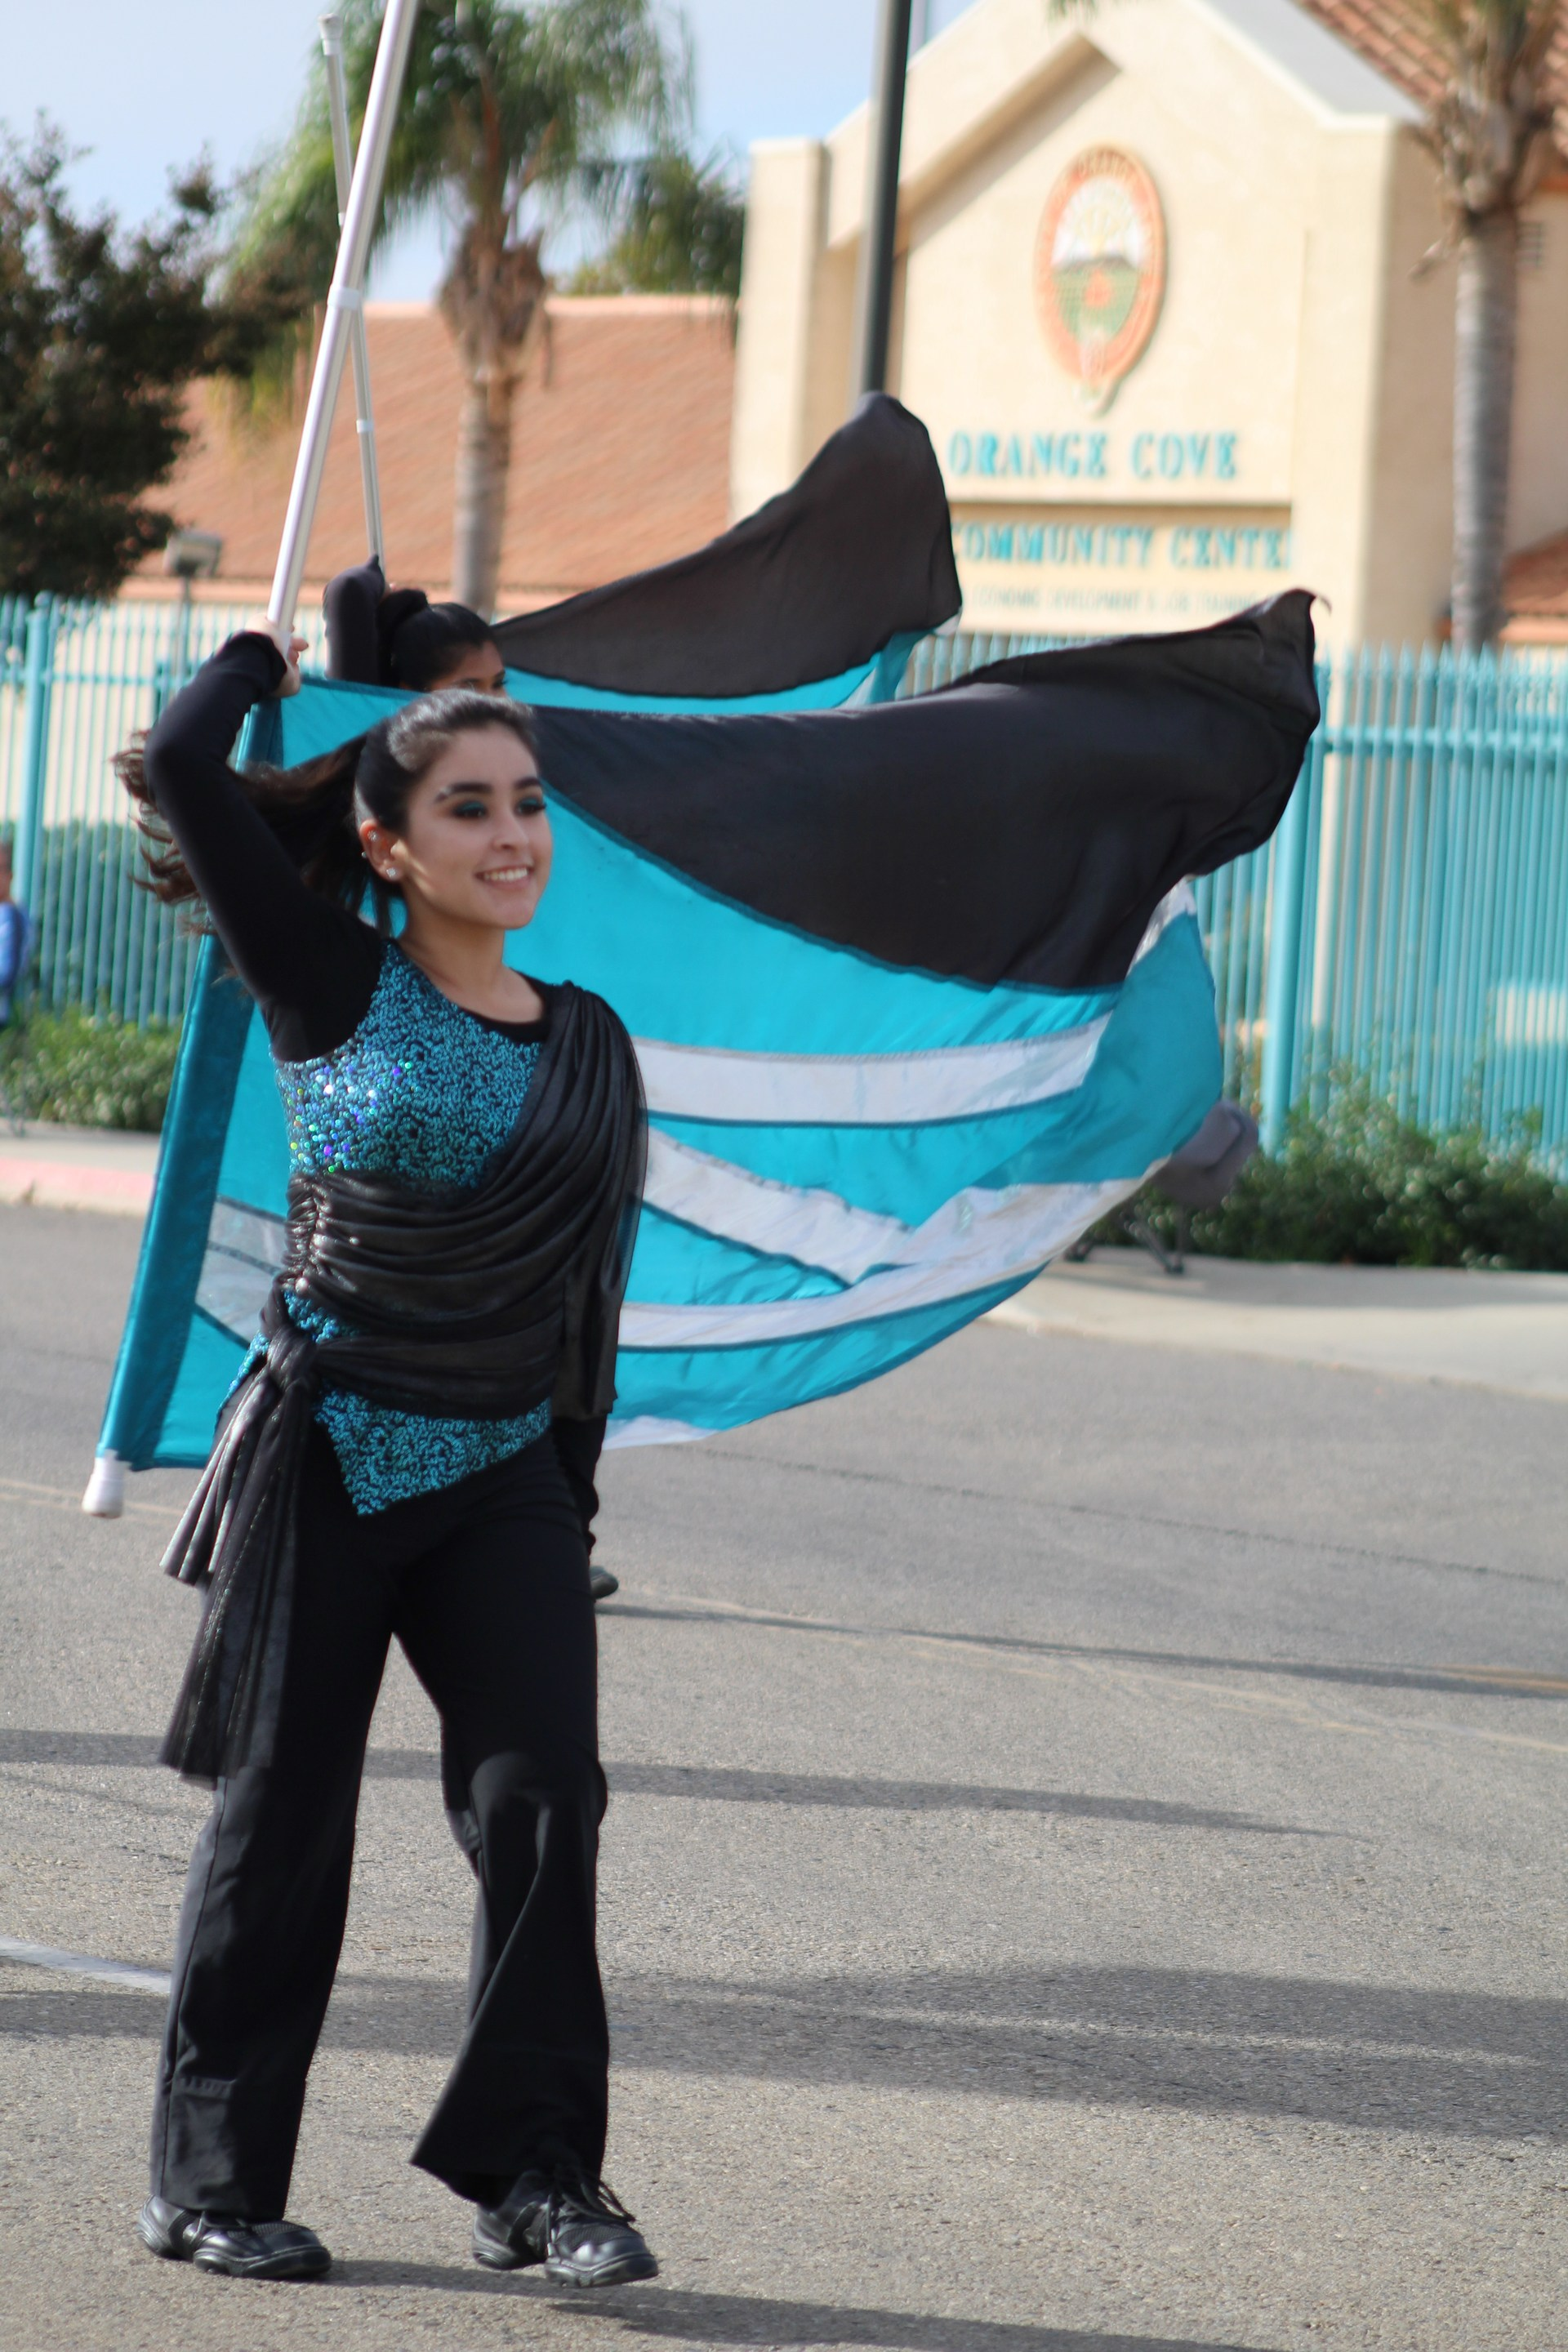 Color Guard at a Parade